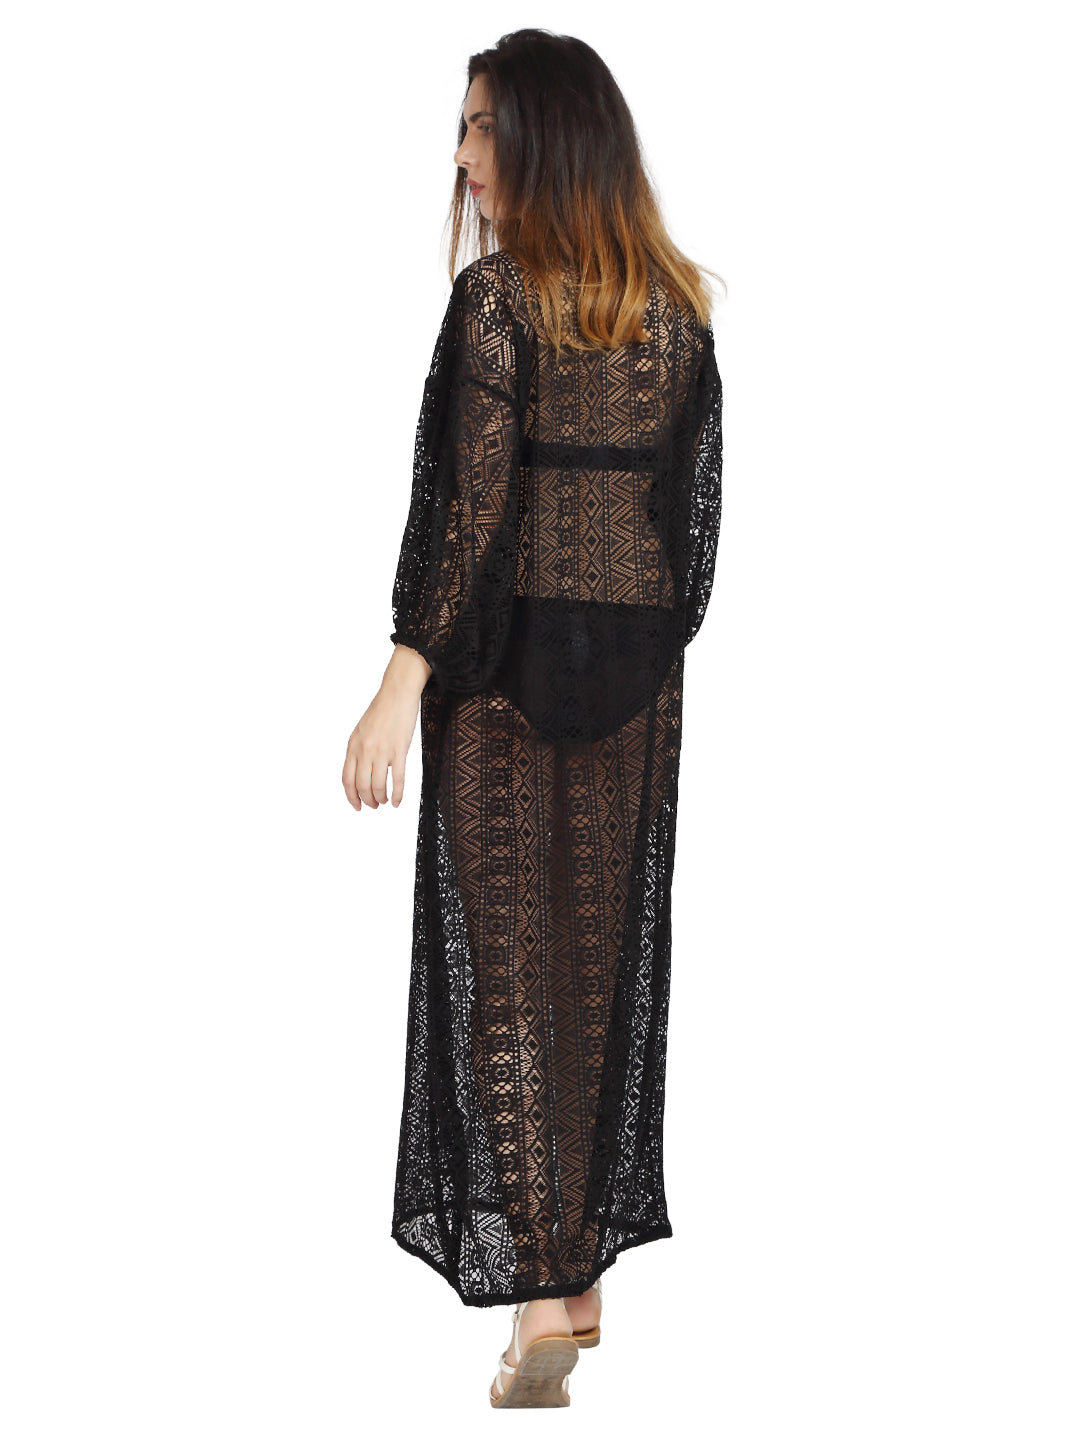 Black Lace Kaftan with Hand Done Embroidery